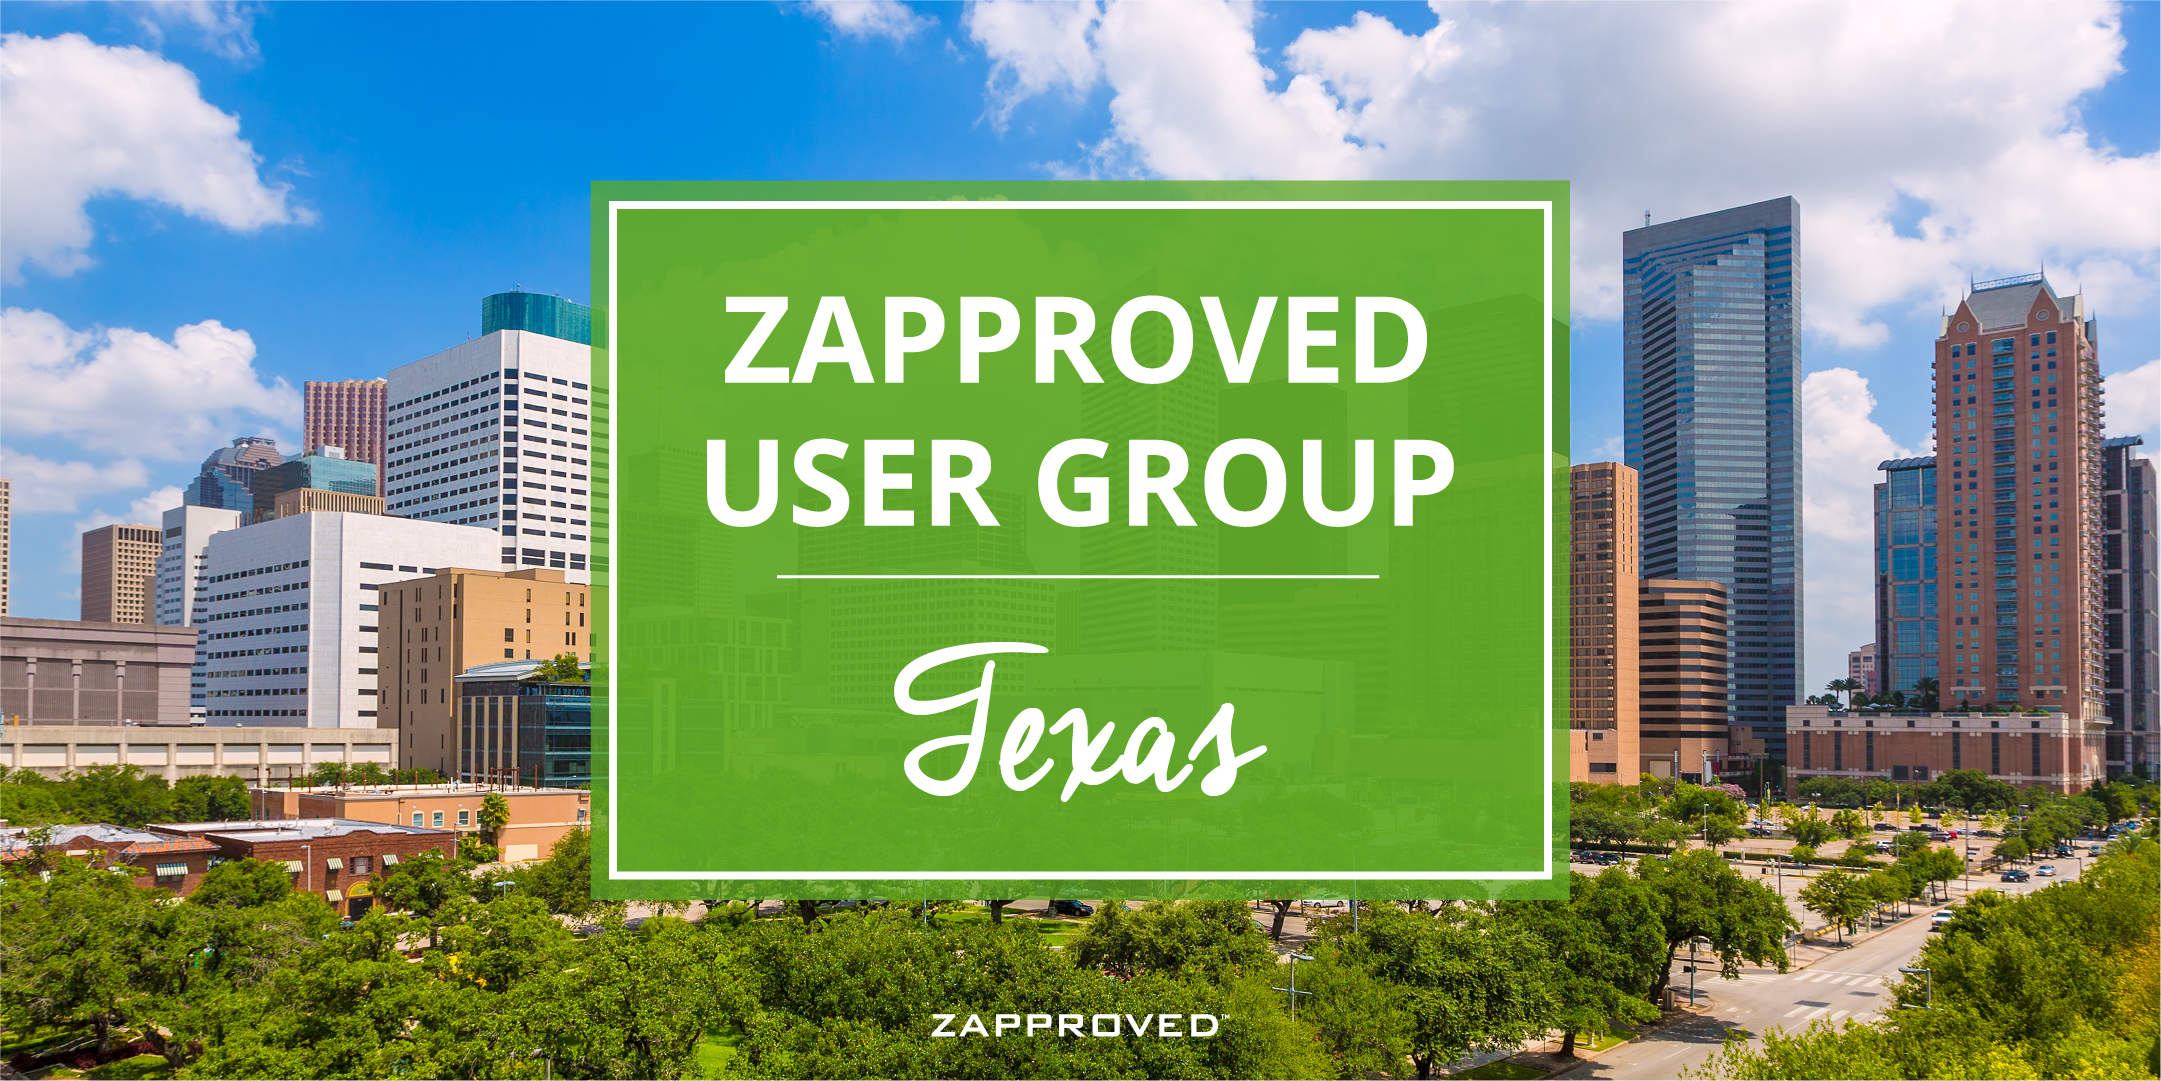 Zapproved User Group Meeting - Houston, TX on May 16, 2017